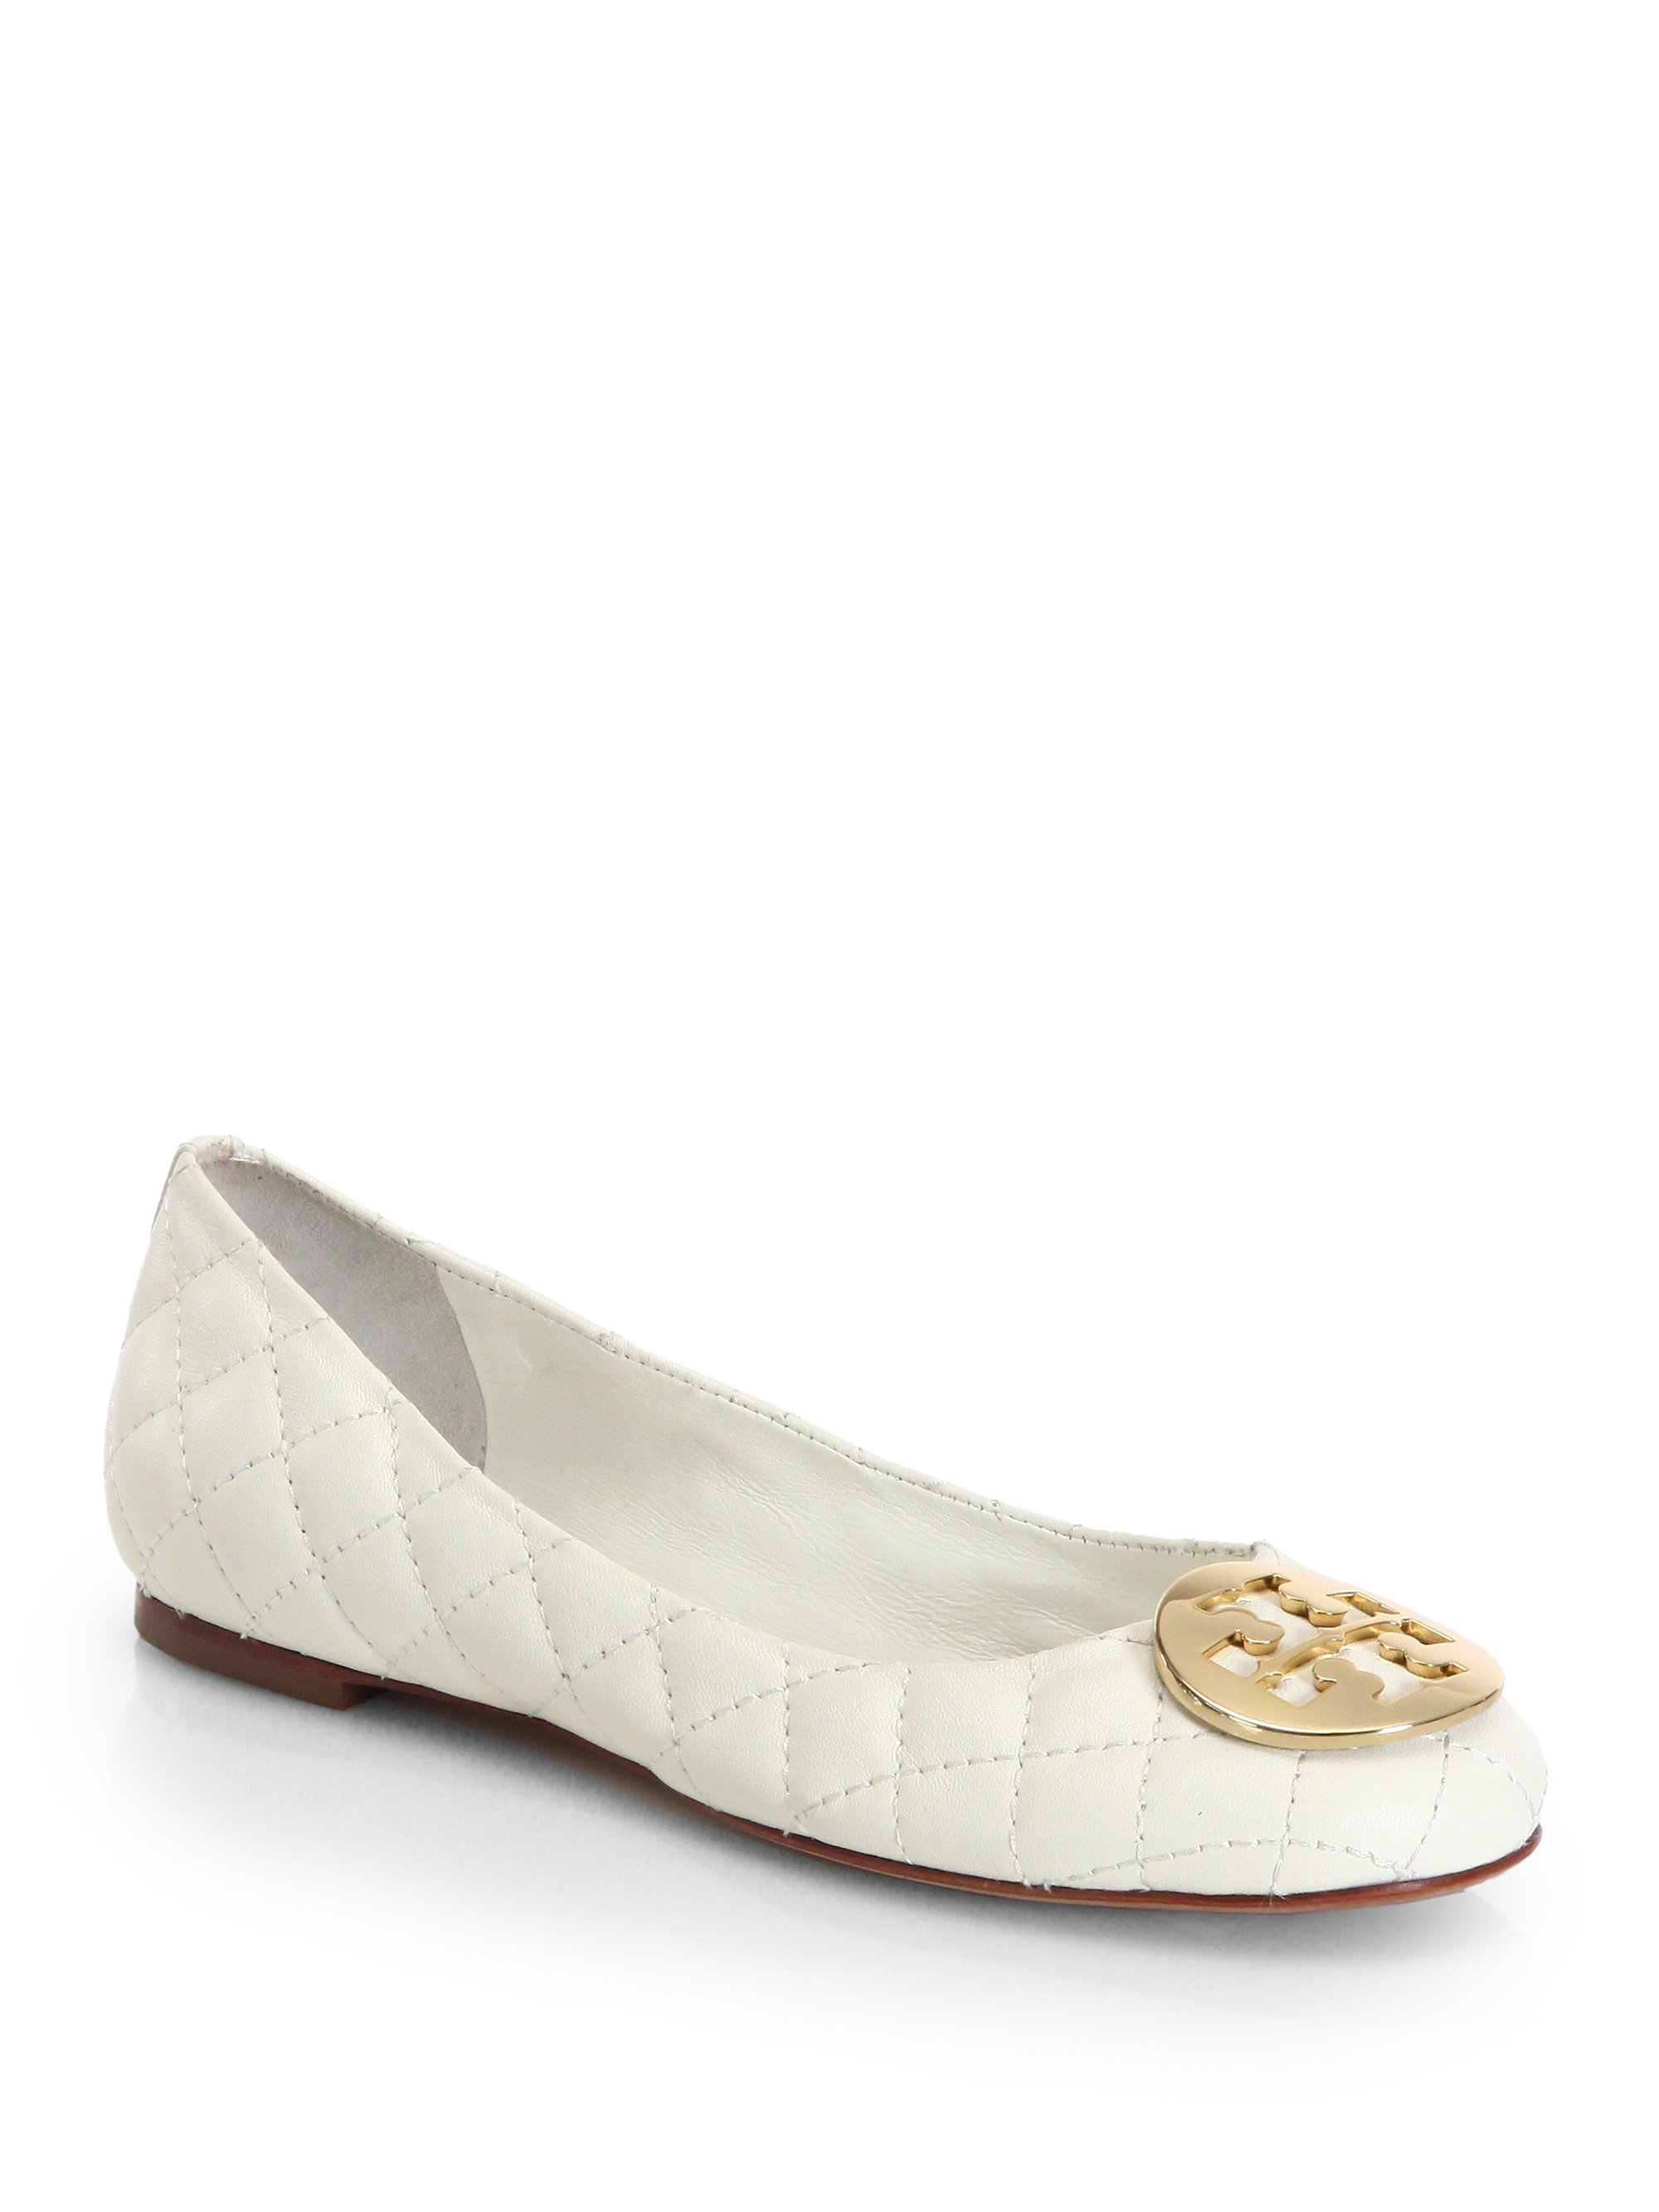 fc11c0da0d1a Lyst - Tory Burch Quinn Quilted Leather Ballet Flats in White